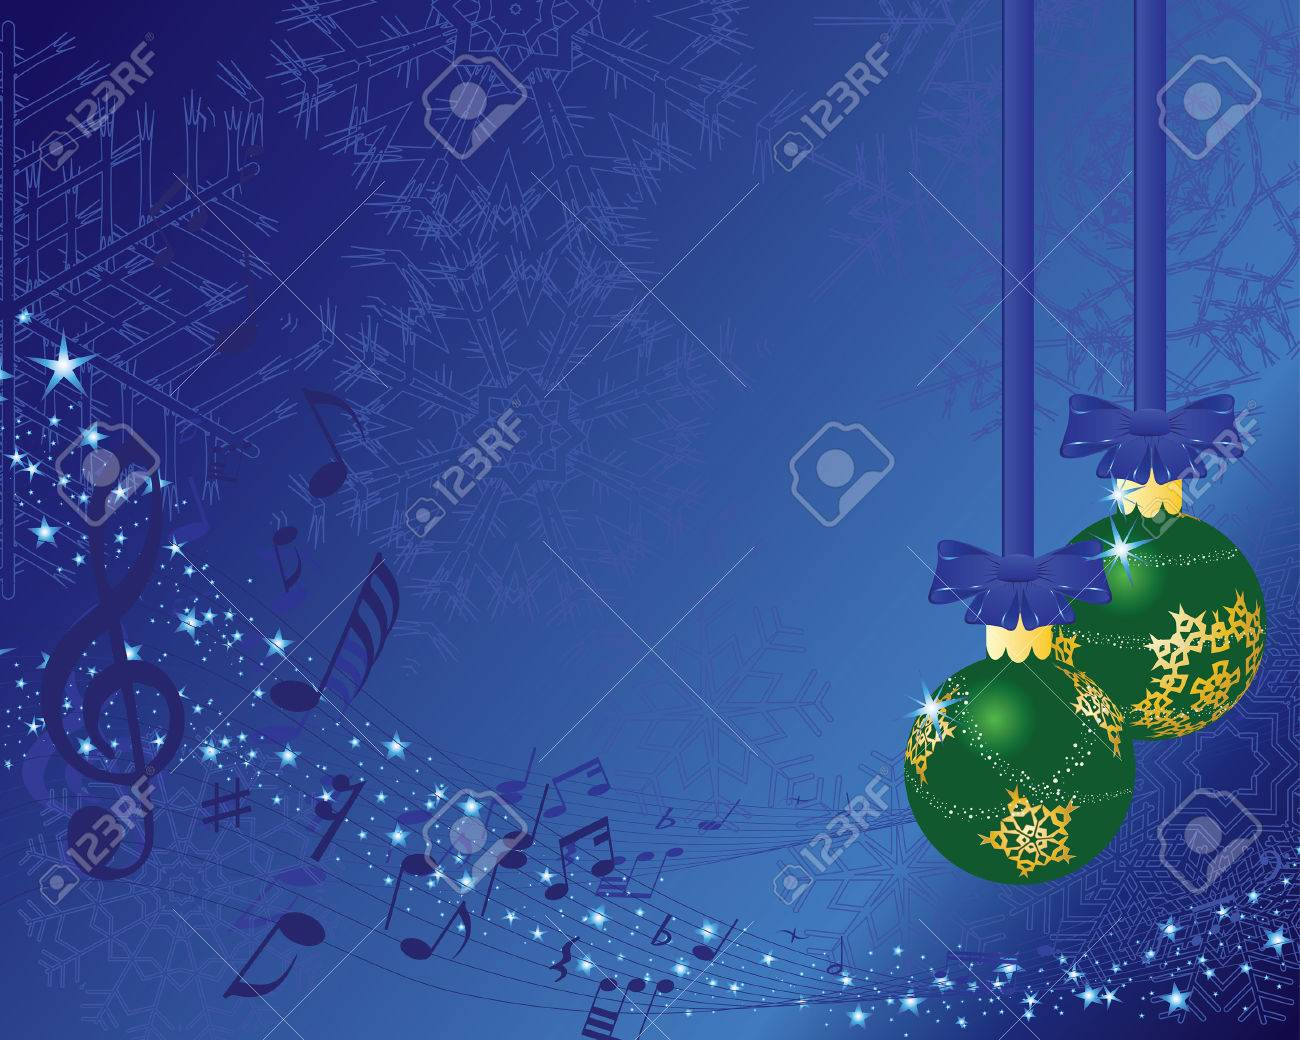 Beautiful vector christmas new year background for design use - Beautiful Vector Christmas New Year Background For Design Use Stock Vector 5634774